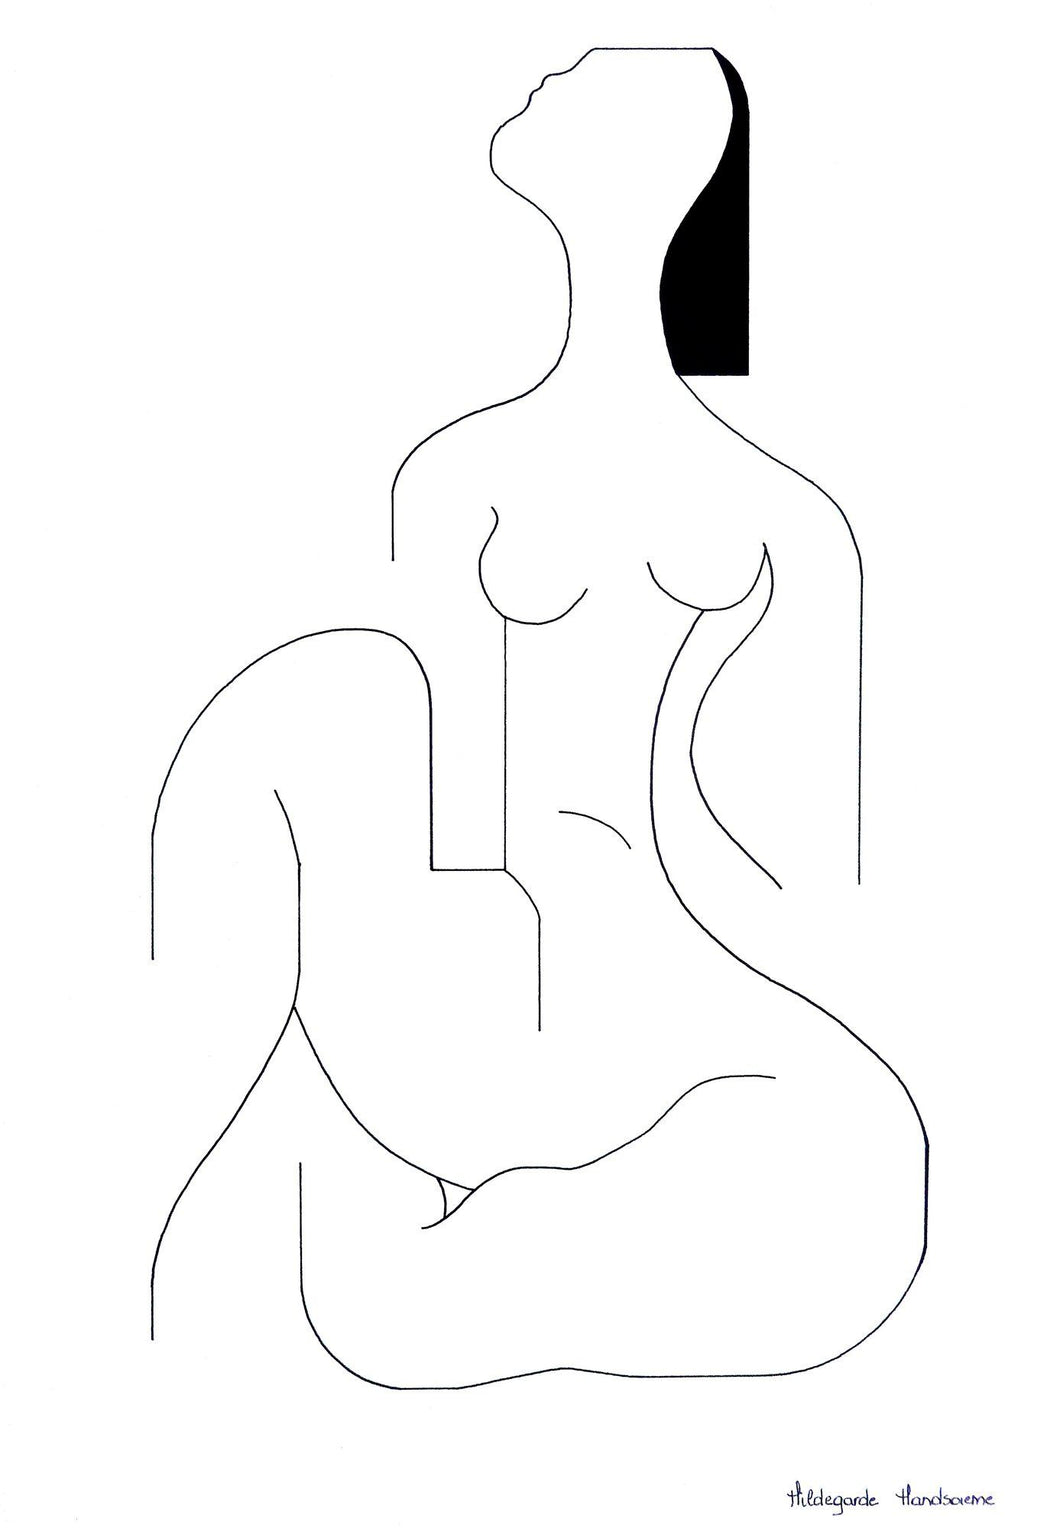 Lamadame by Hildegarde Handsaeme, Drawing at Art Acacia Gallery & Advisory